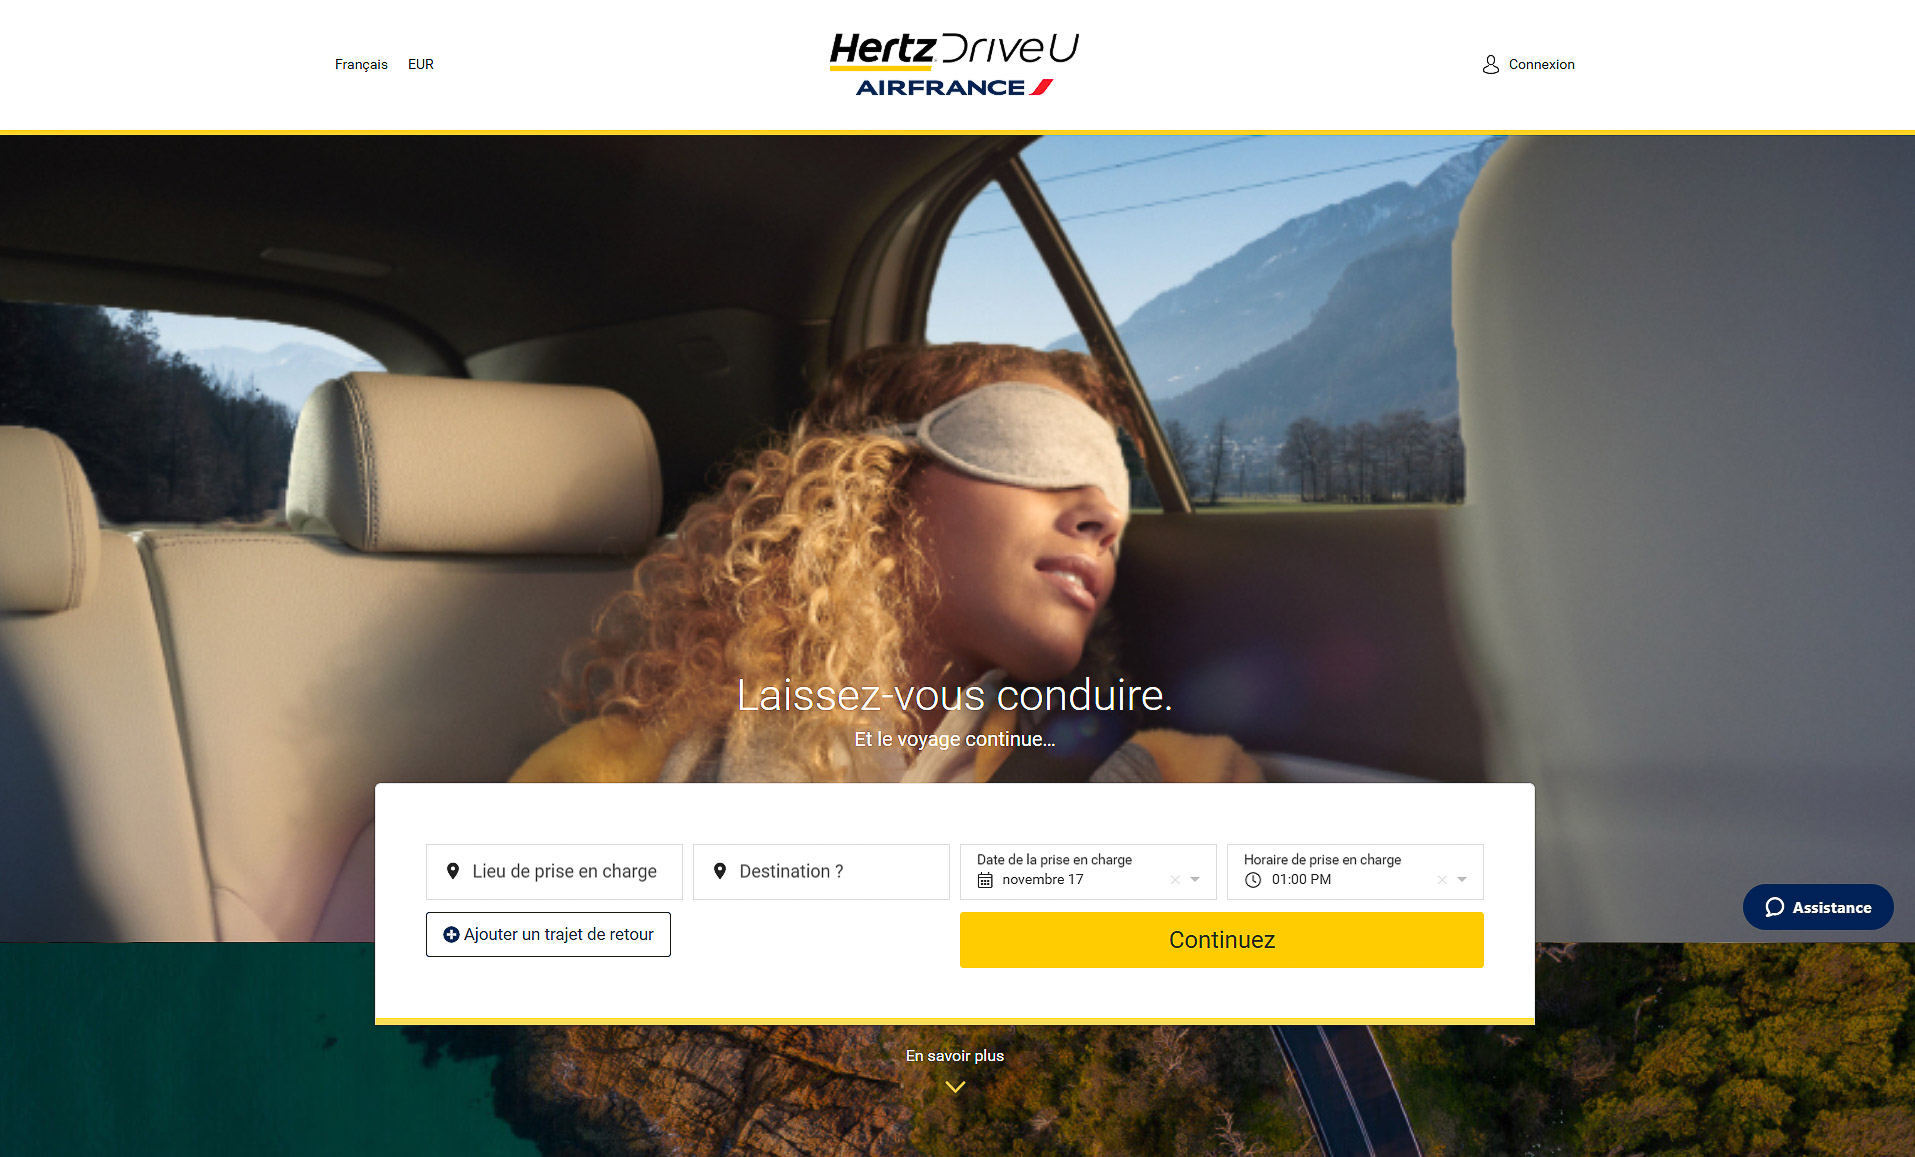 Air France Hertz DriveU - Capture d'écran du site